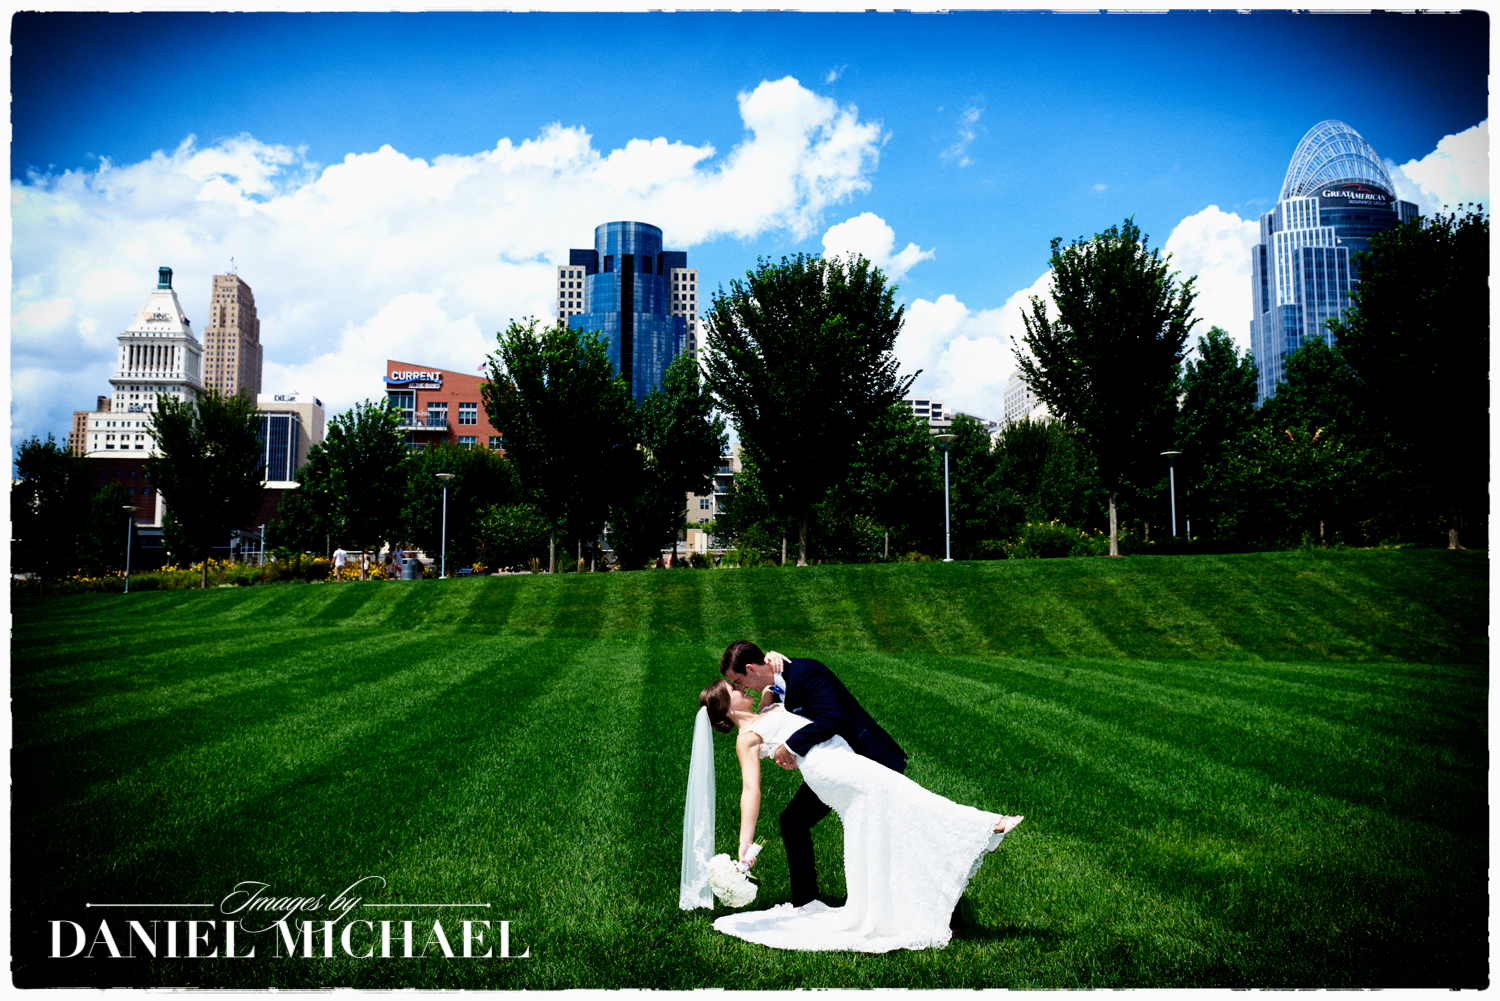 Wedding Photographer Smale Park